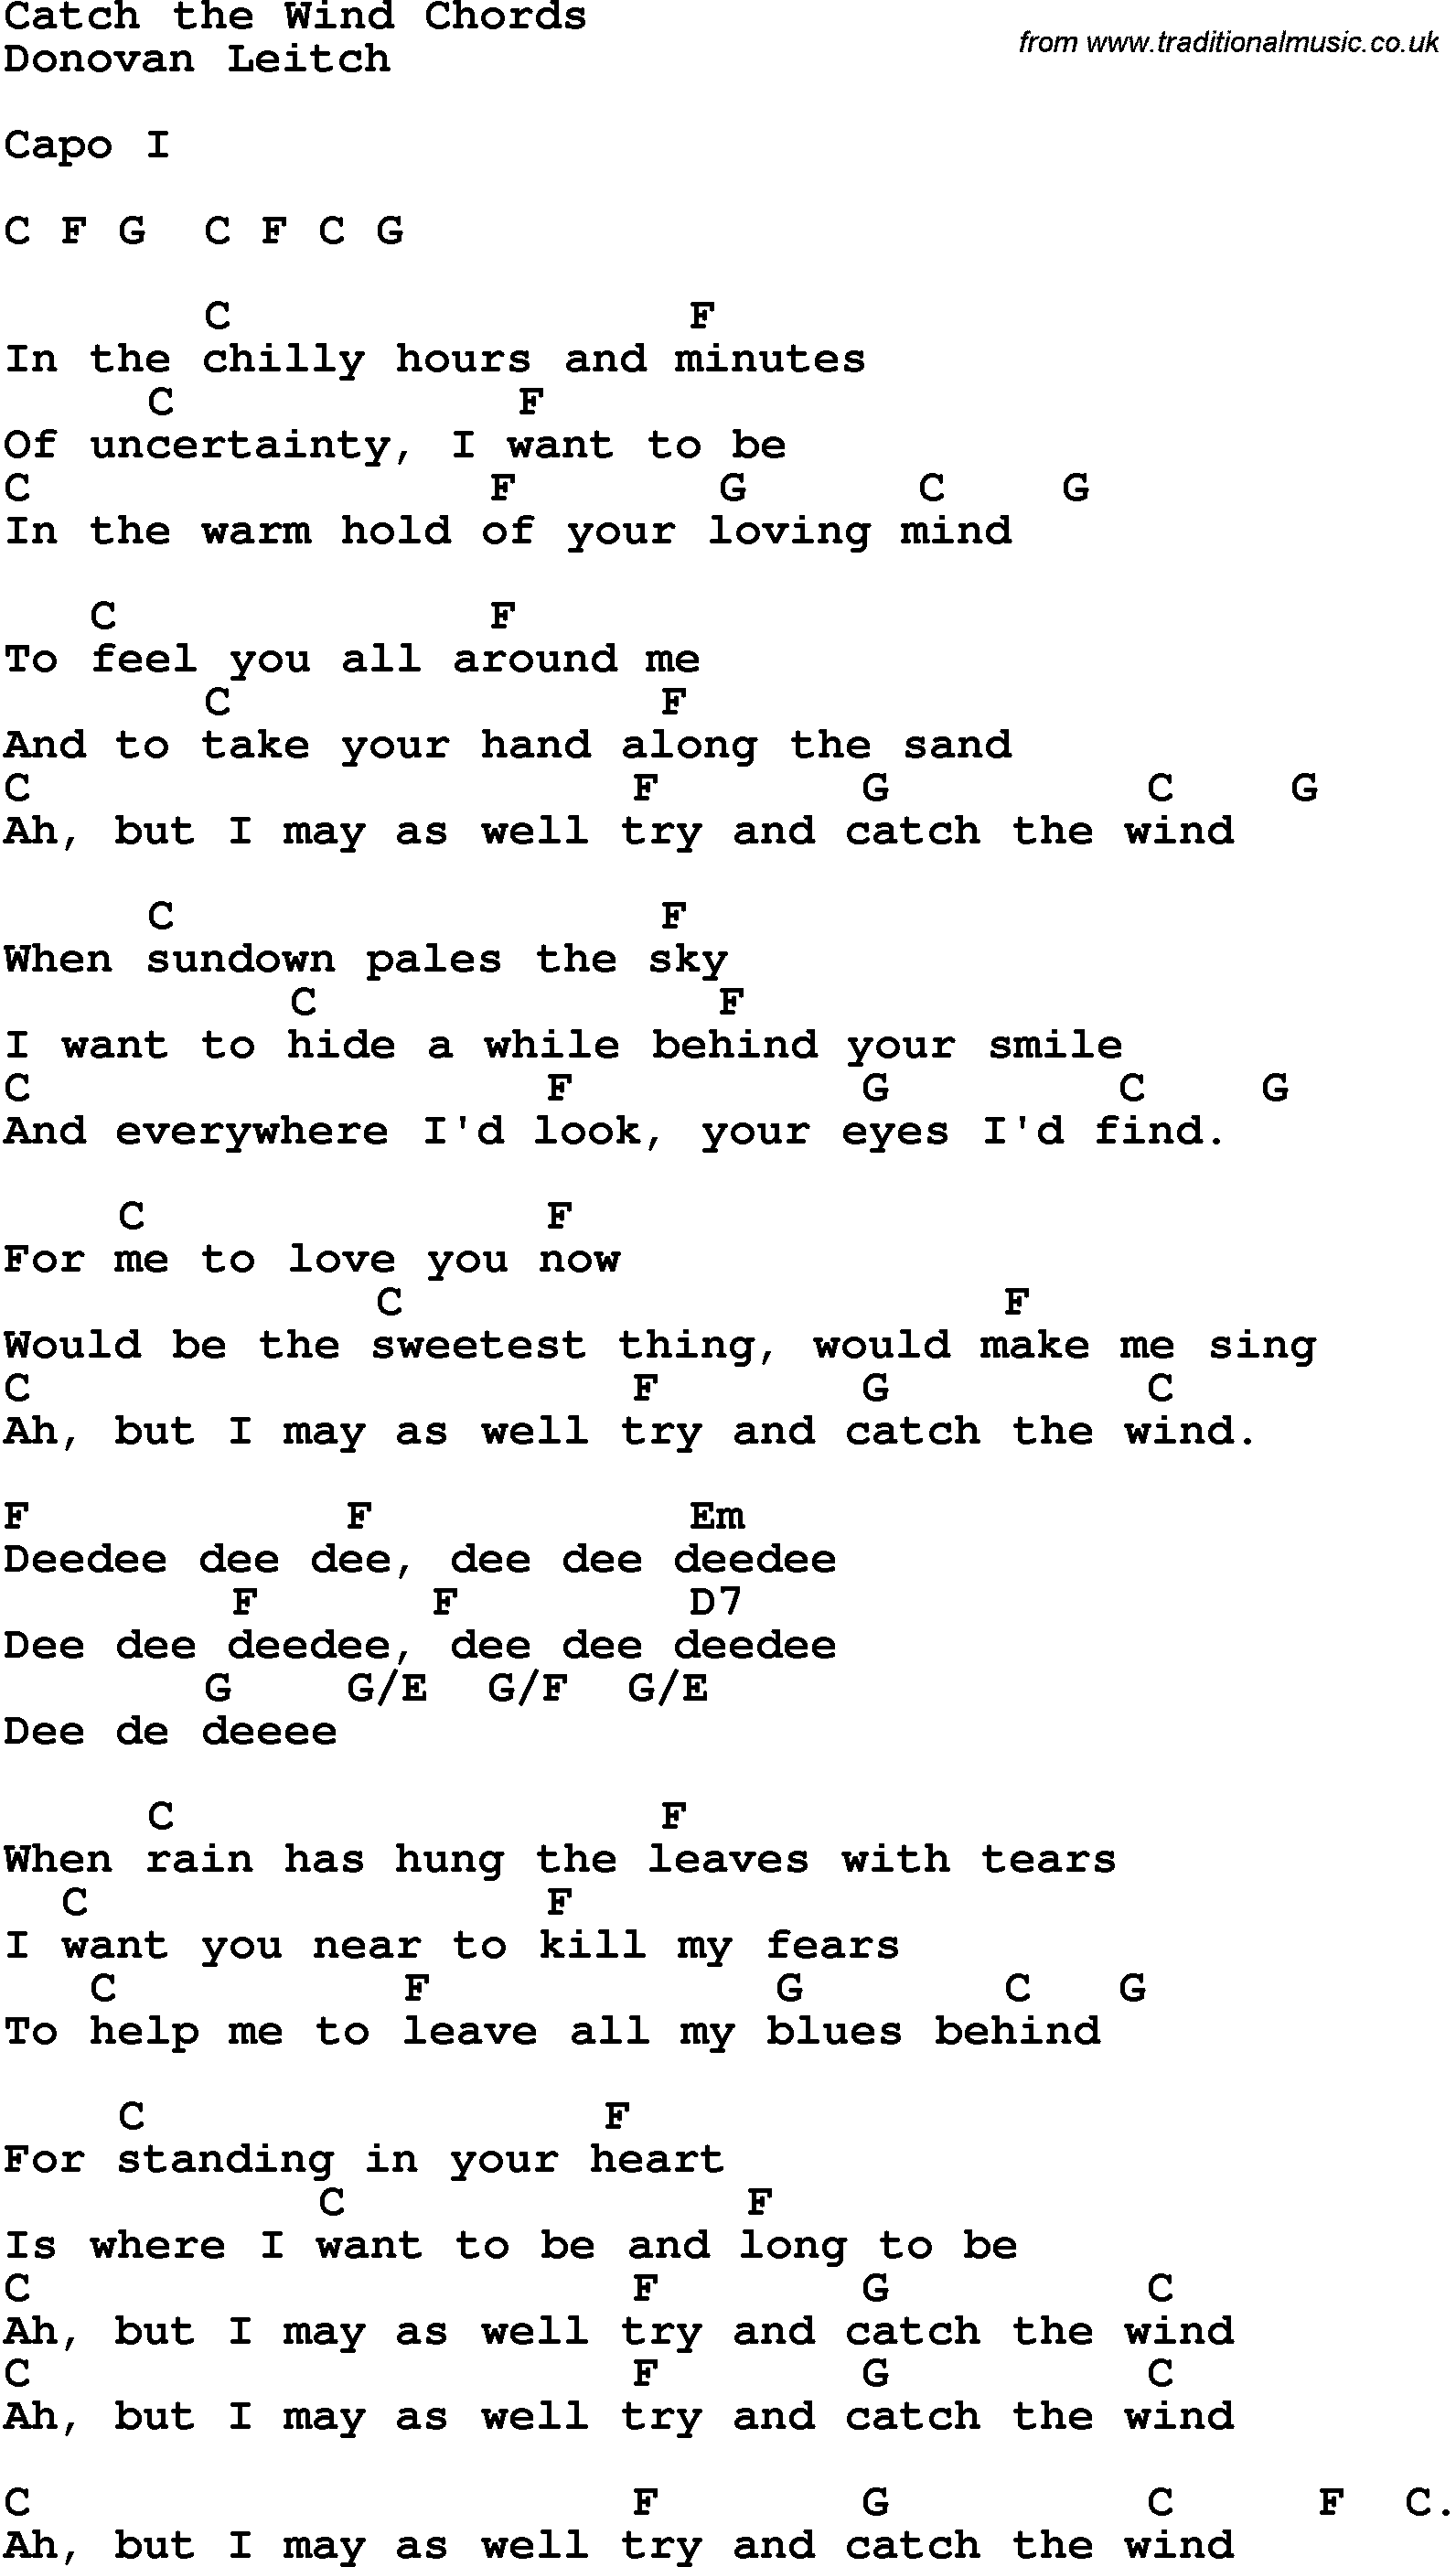 Song Lyrics With Guitar Chords For Catch The Wind